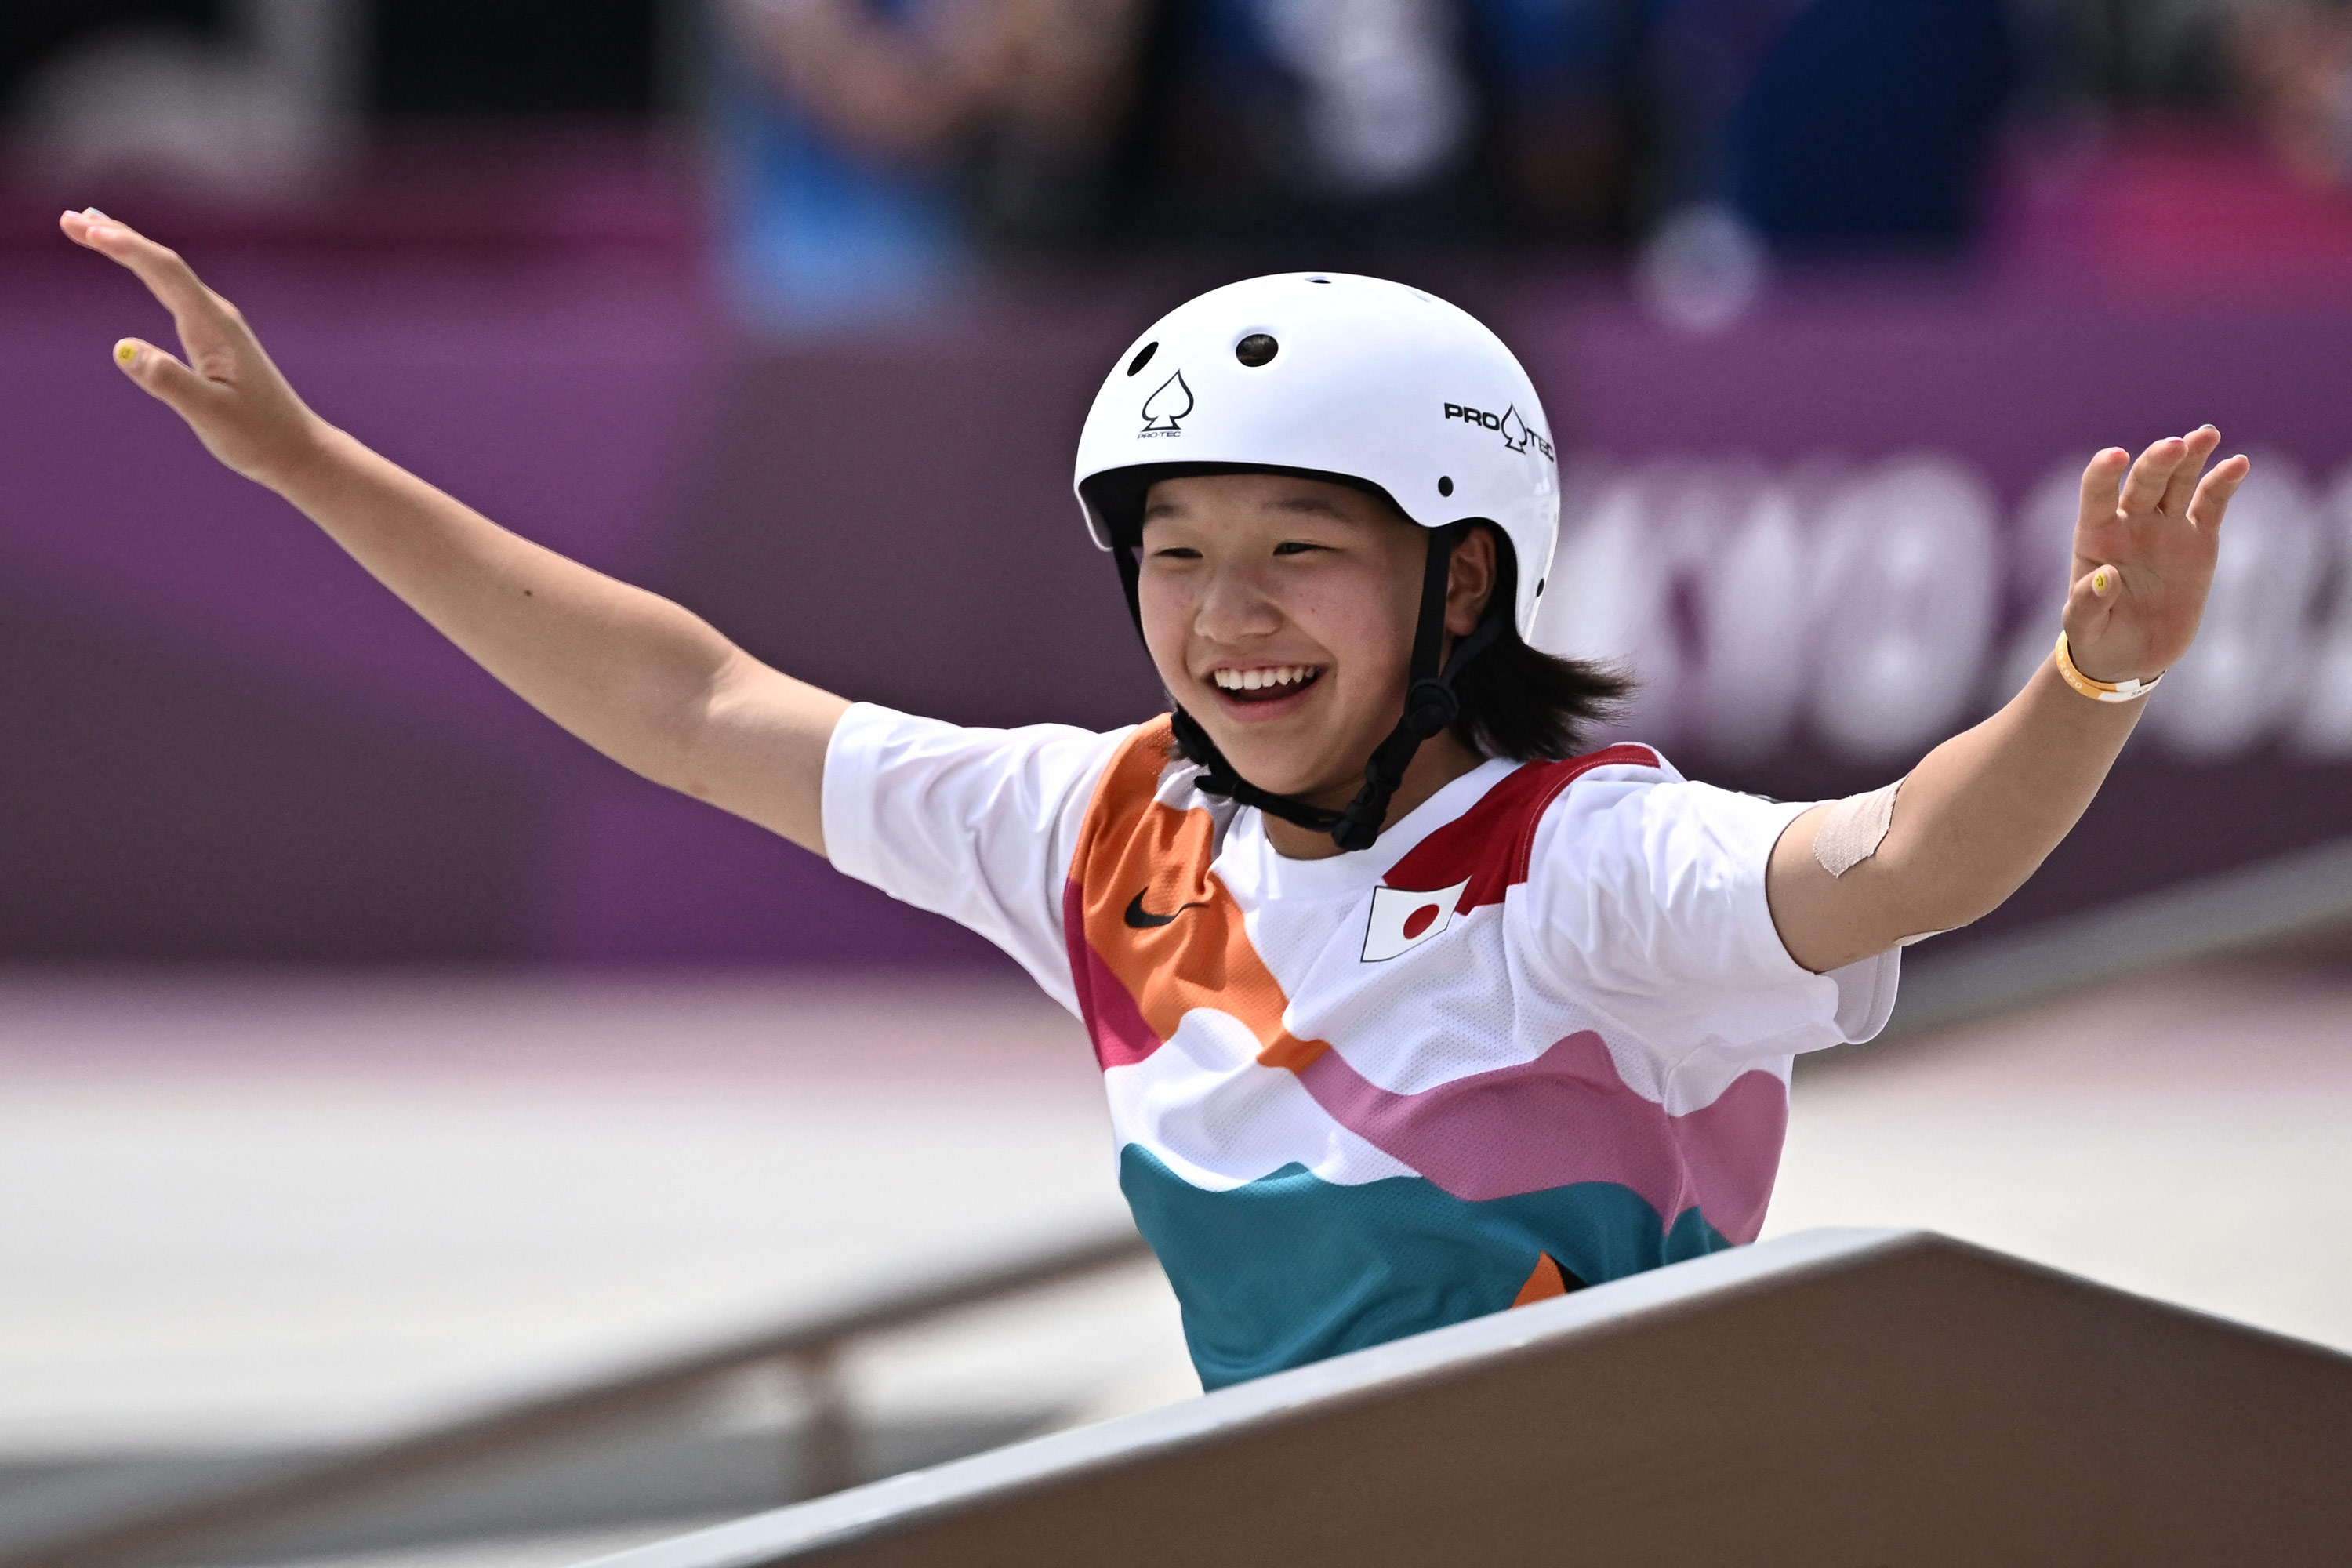 Skateboarder Nishiya Momiji, 13, just became one of the youngest gold medal winners ever